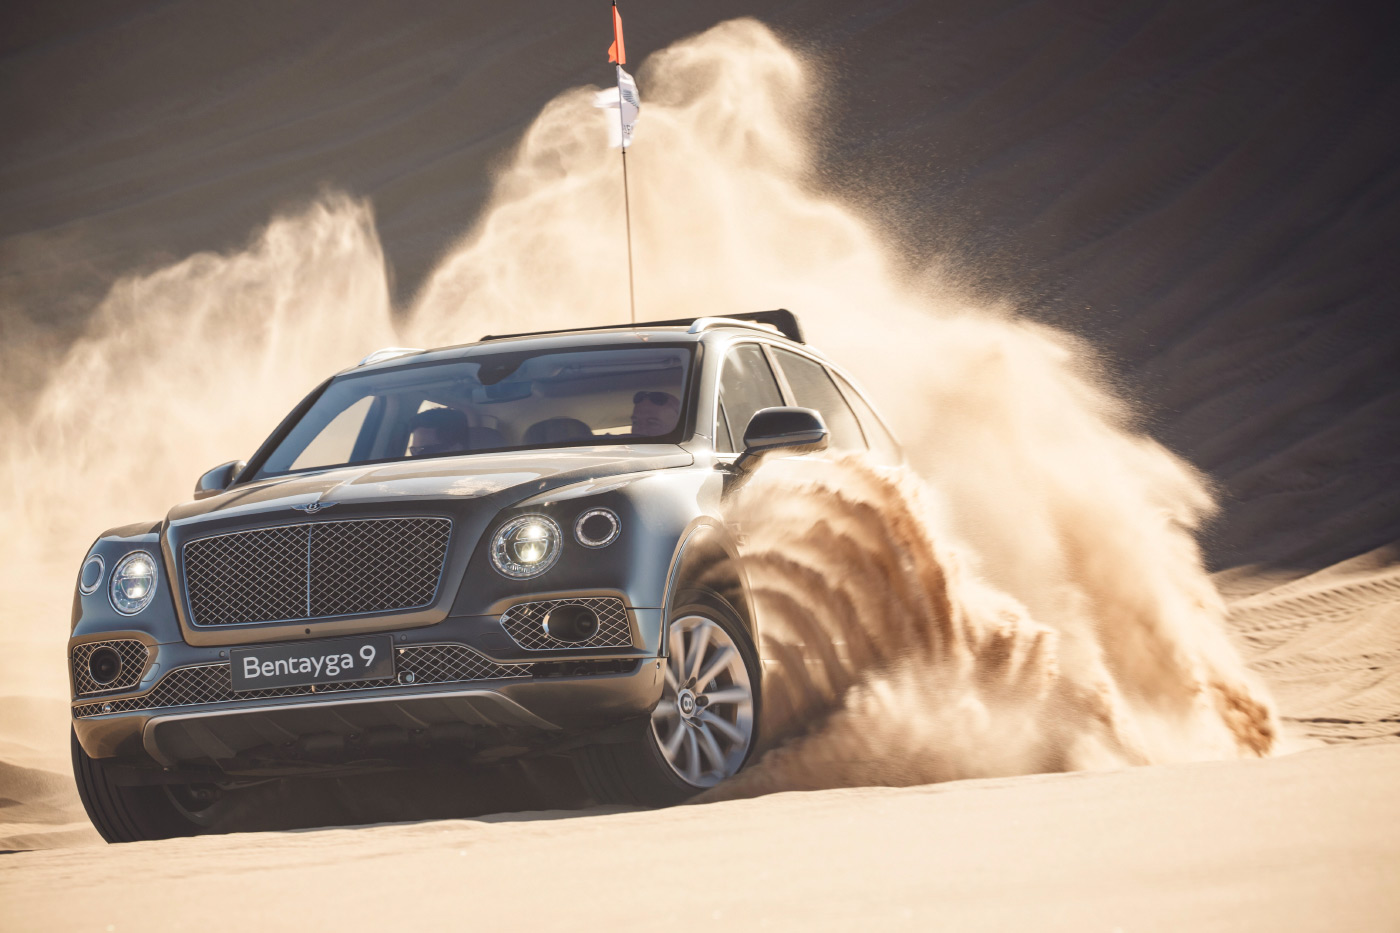 <p>Bentley's Bentayga SUV kicking up the sand in the Glamis Sand Dunes in Southern California.</p>